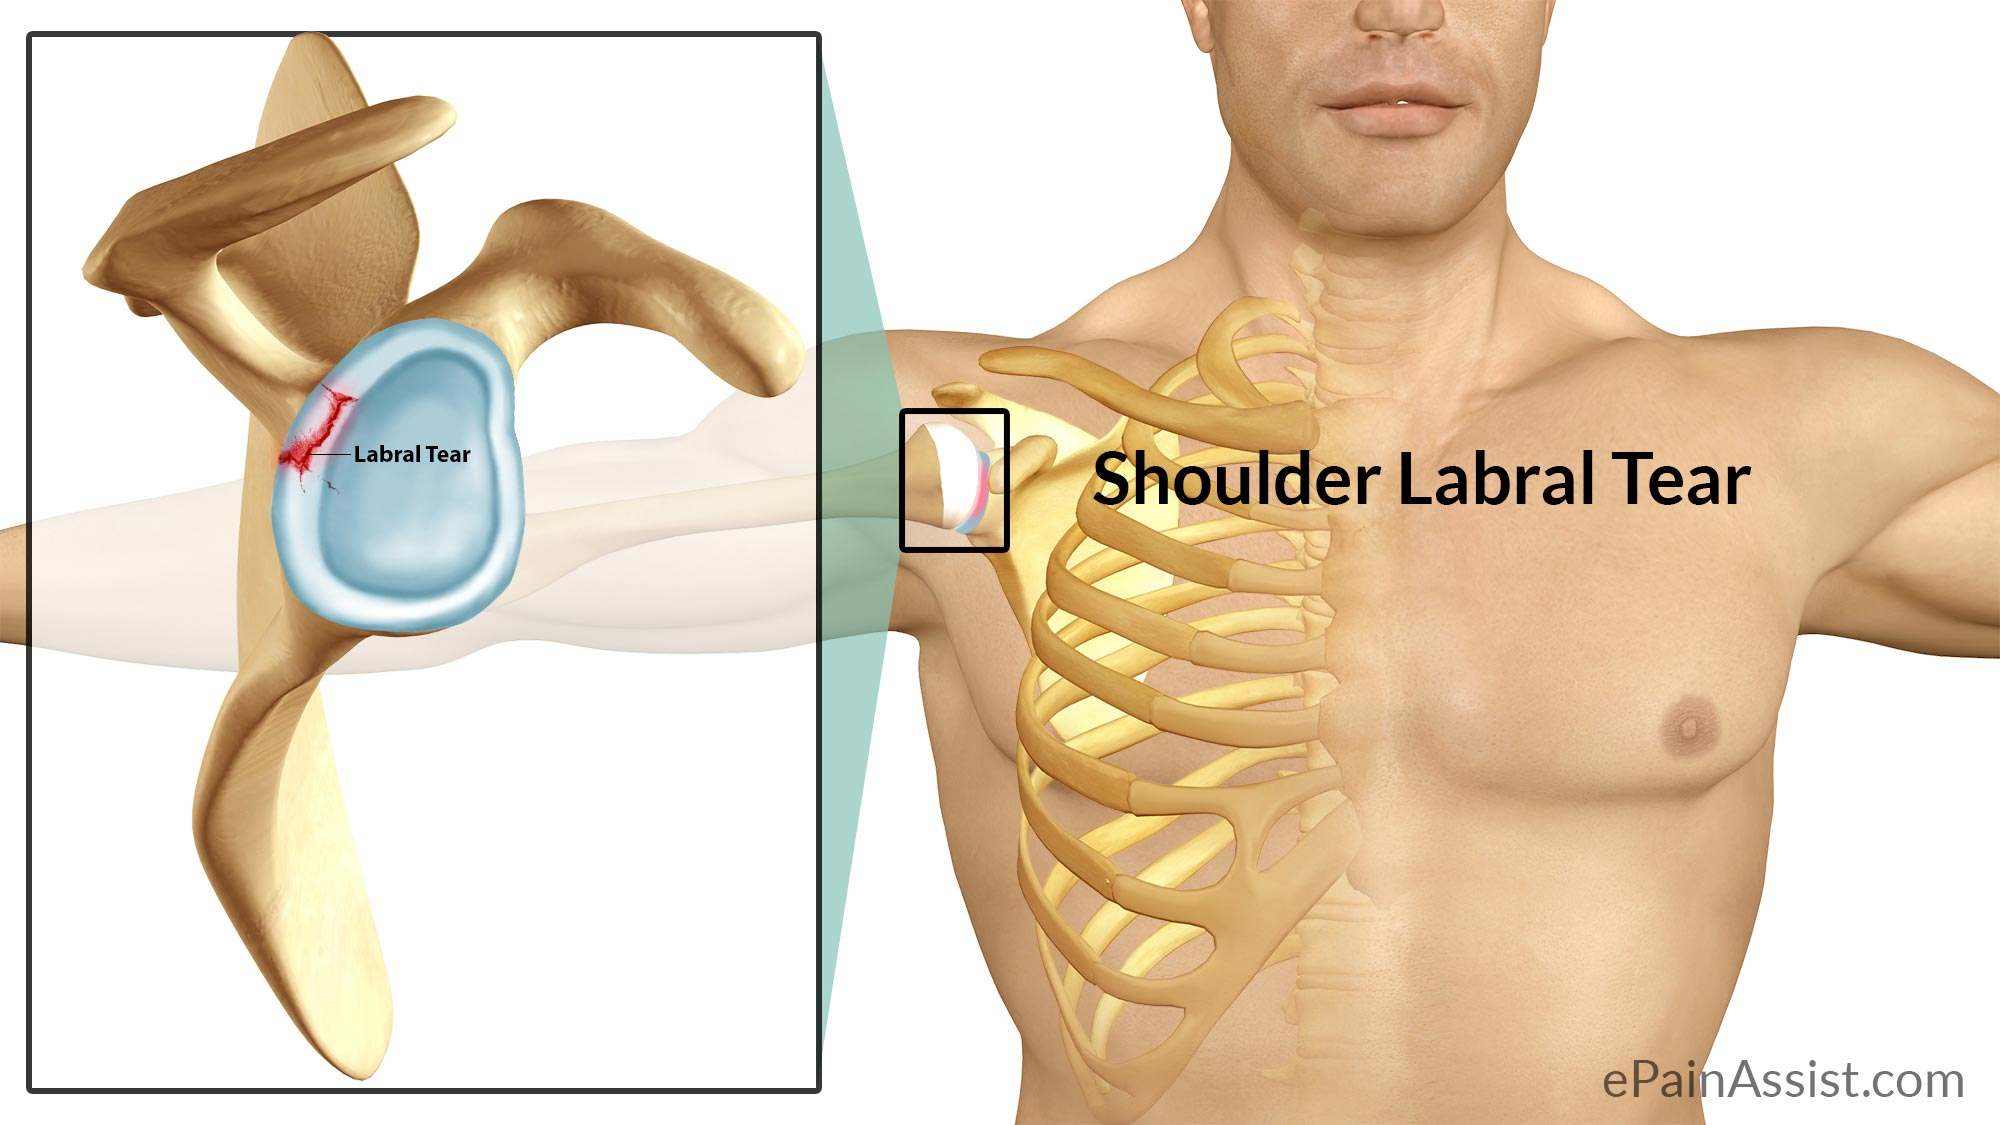 Shoulder Labral Tear Or Shoulder Joint Tear